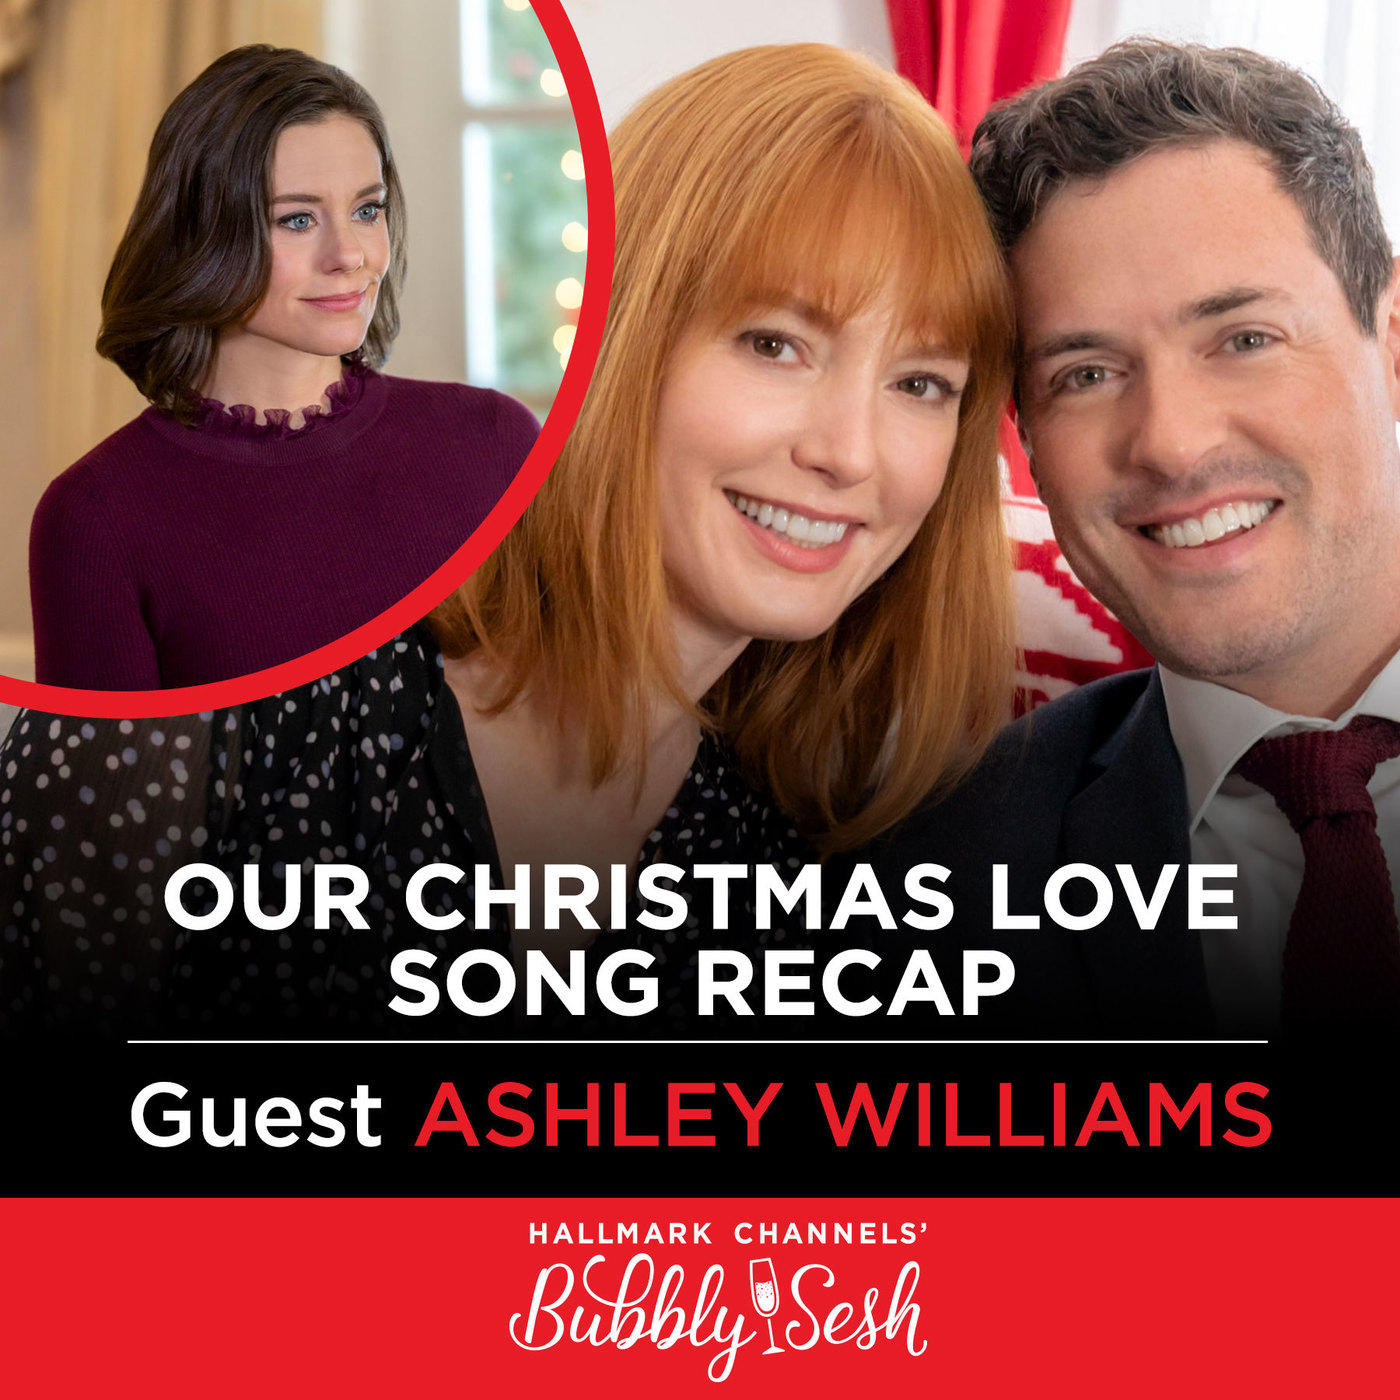 Our Christmas Love Song Recap with Ashley Williams